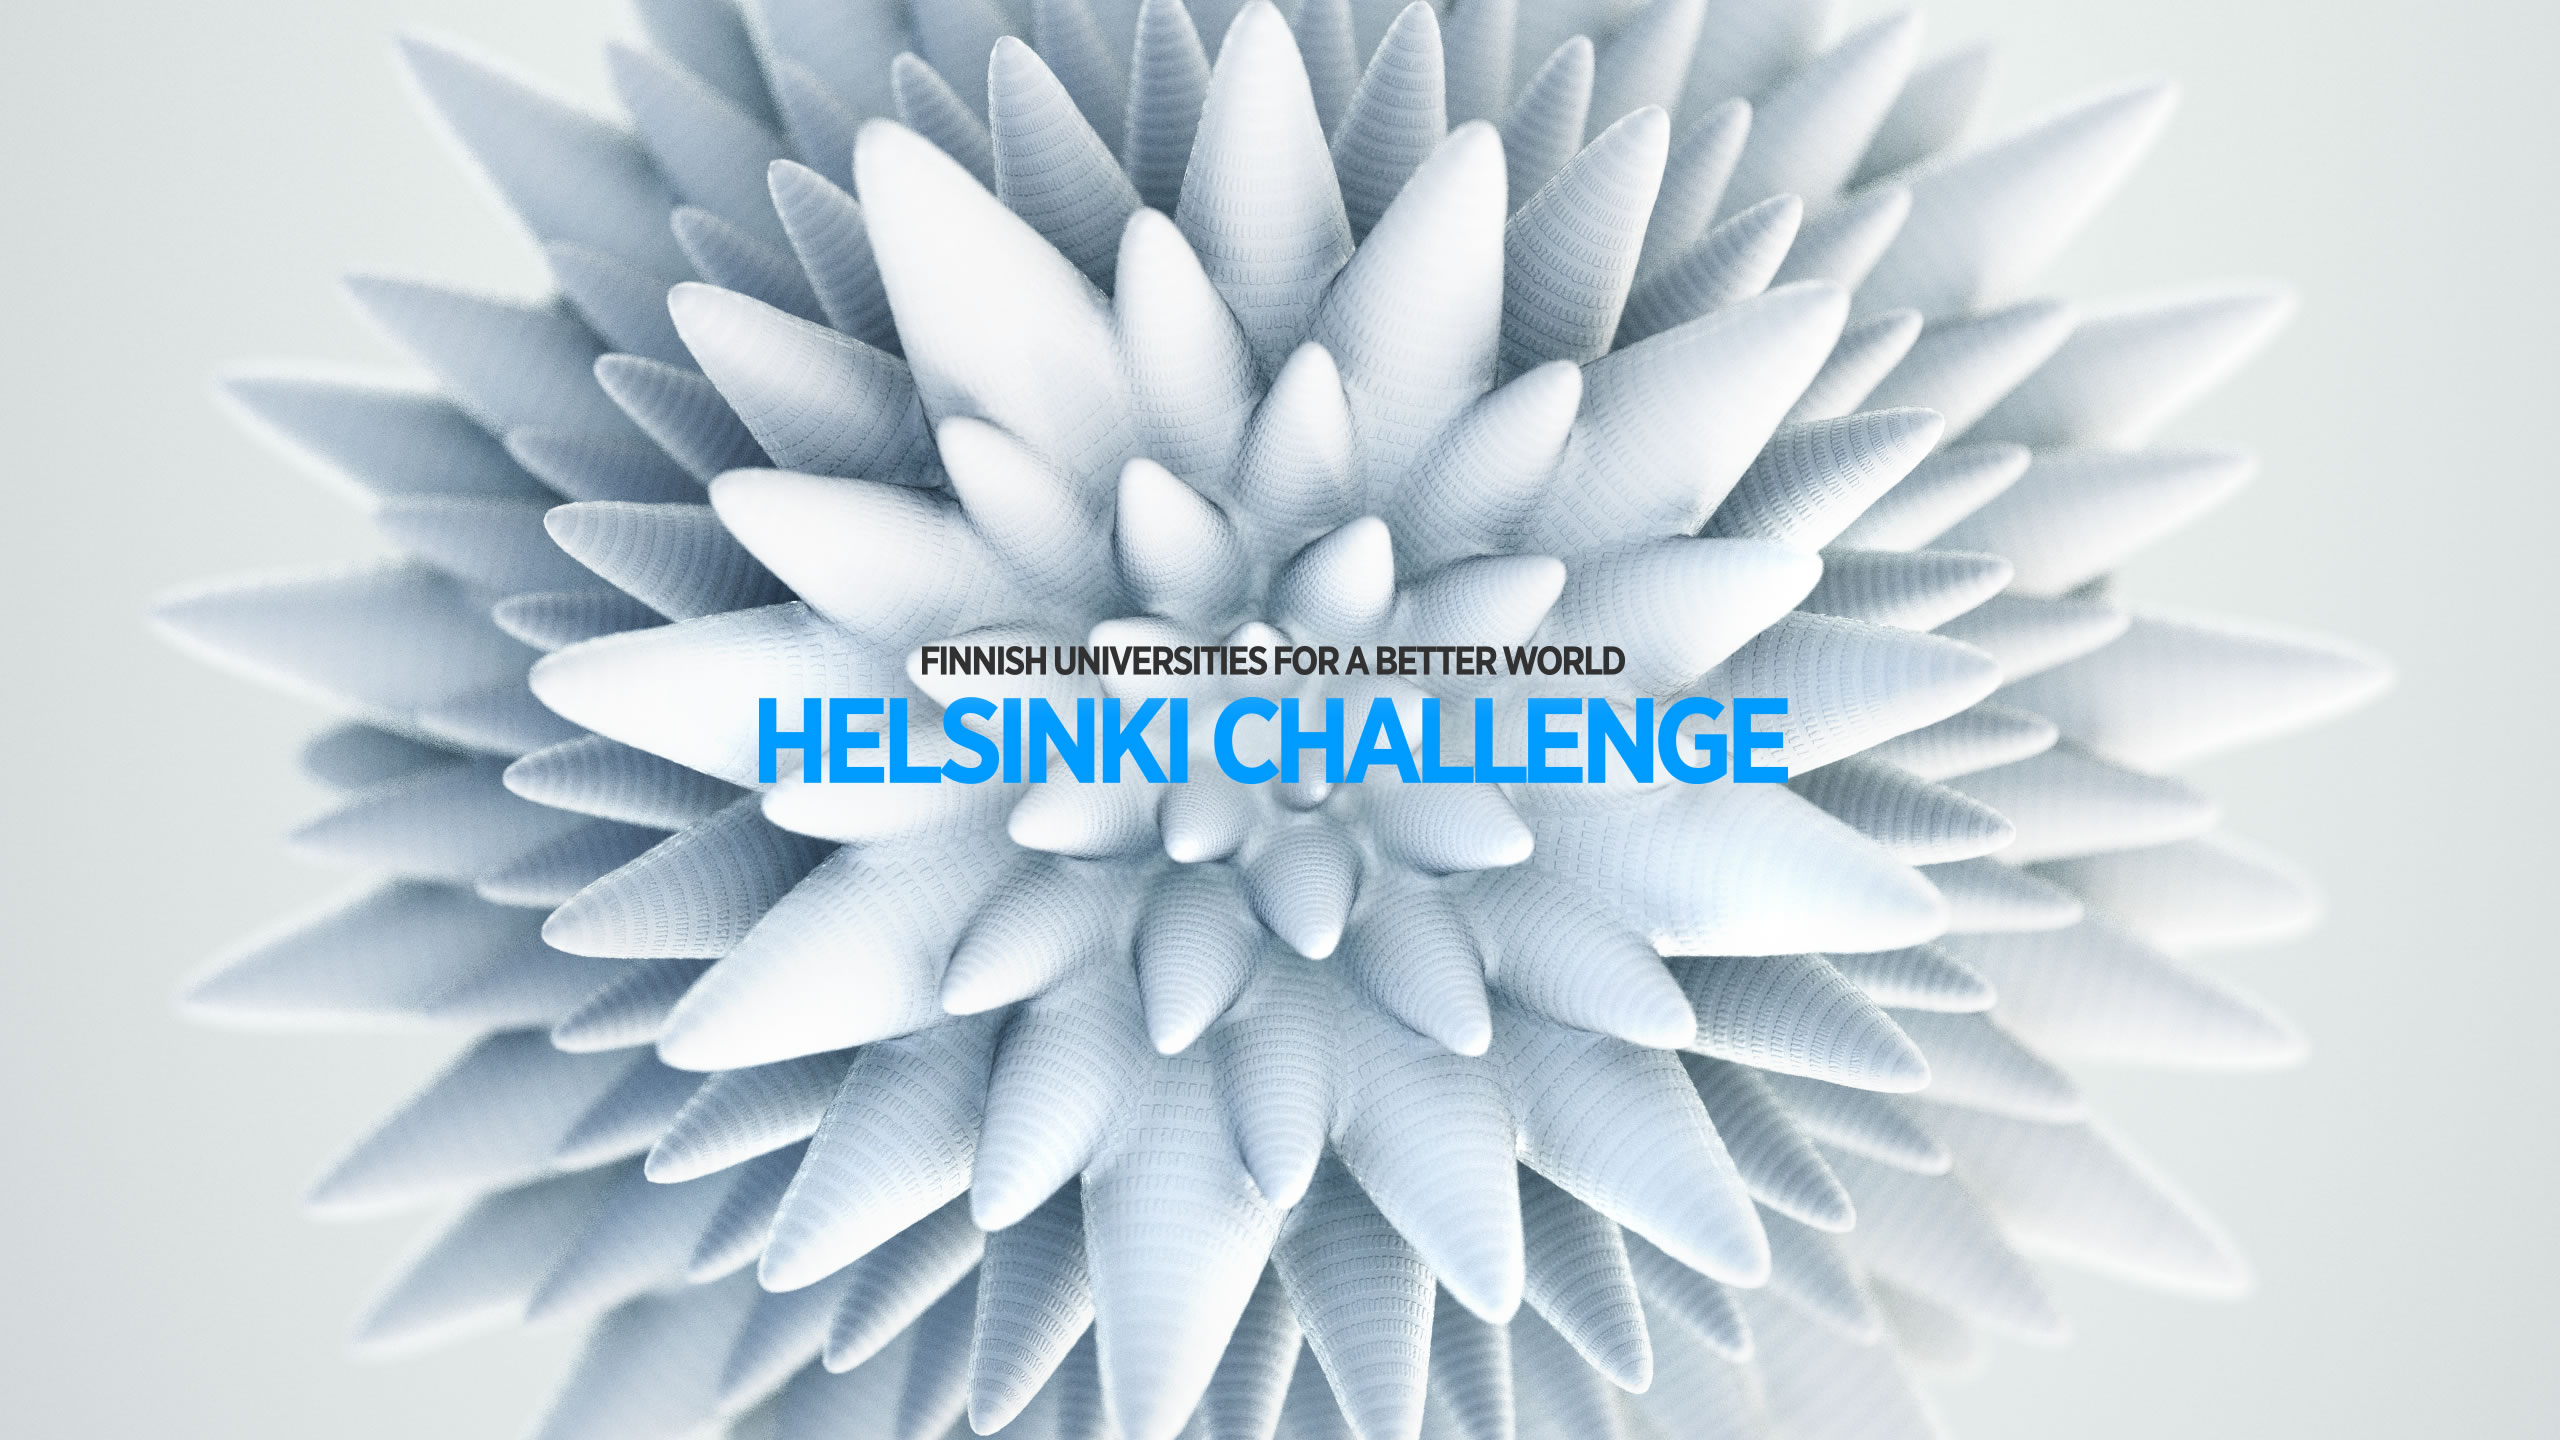 A pedagogical project reaches the Helsinki Challenge finals